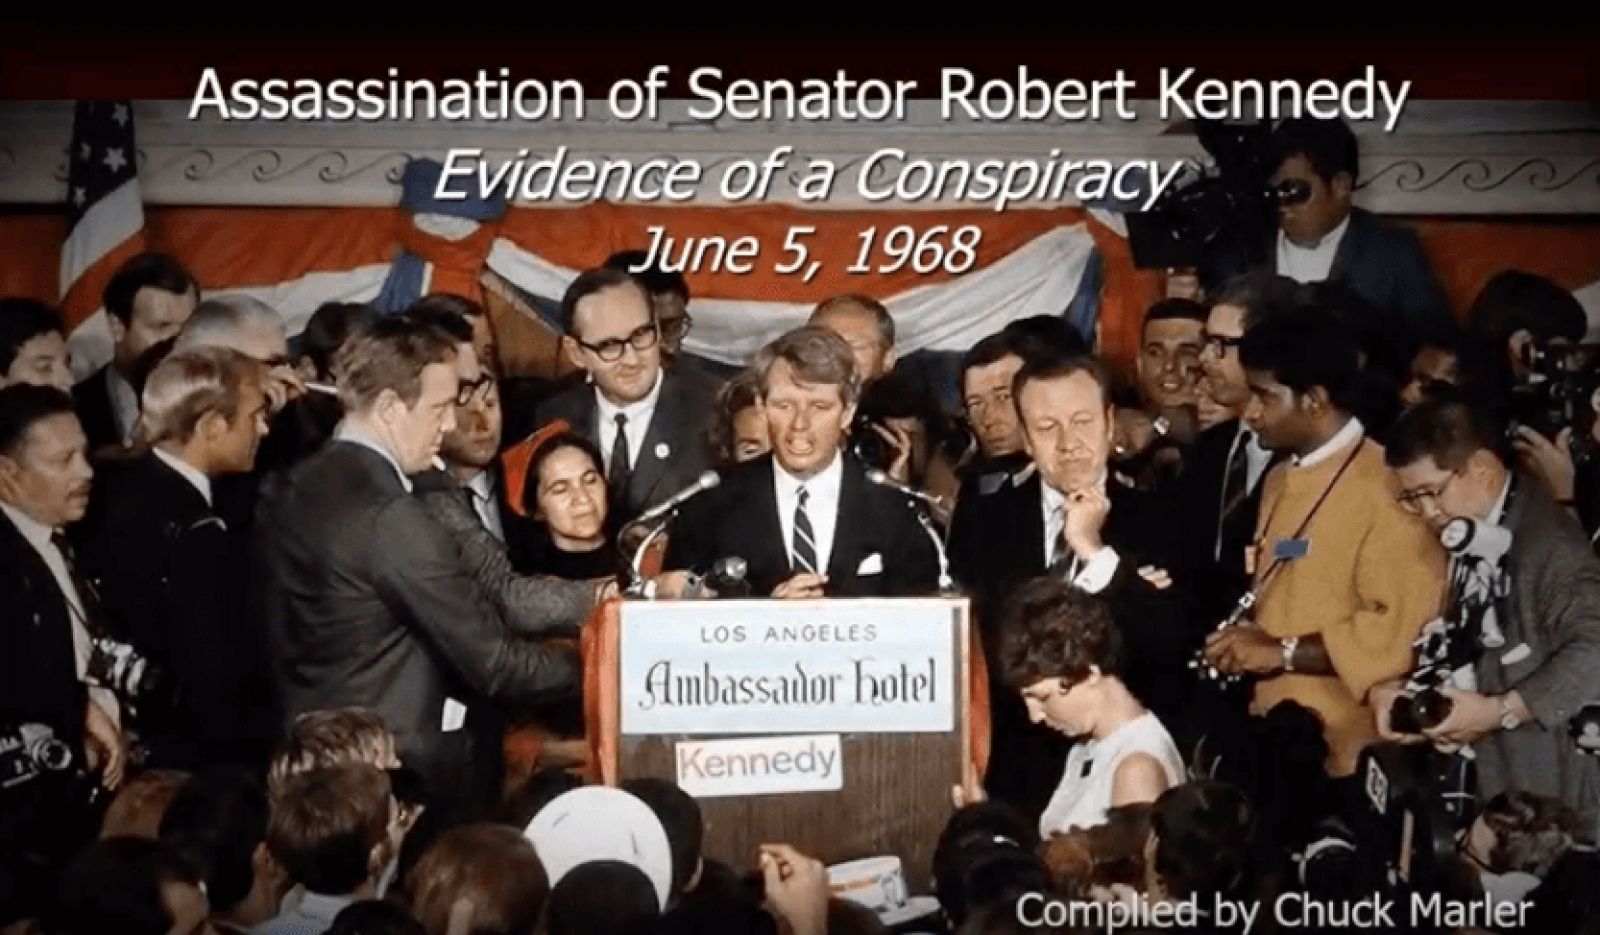 Assassination of RFK - Evidence of a Conspiracy